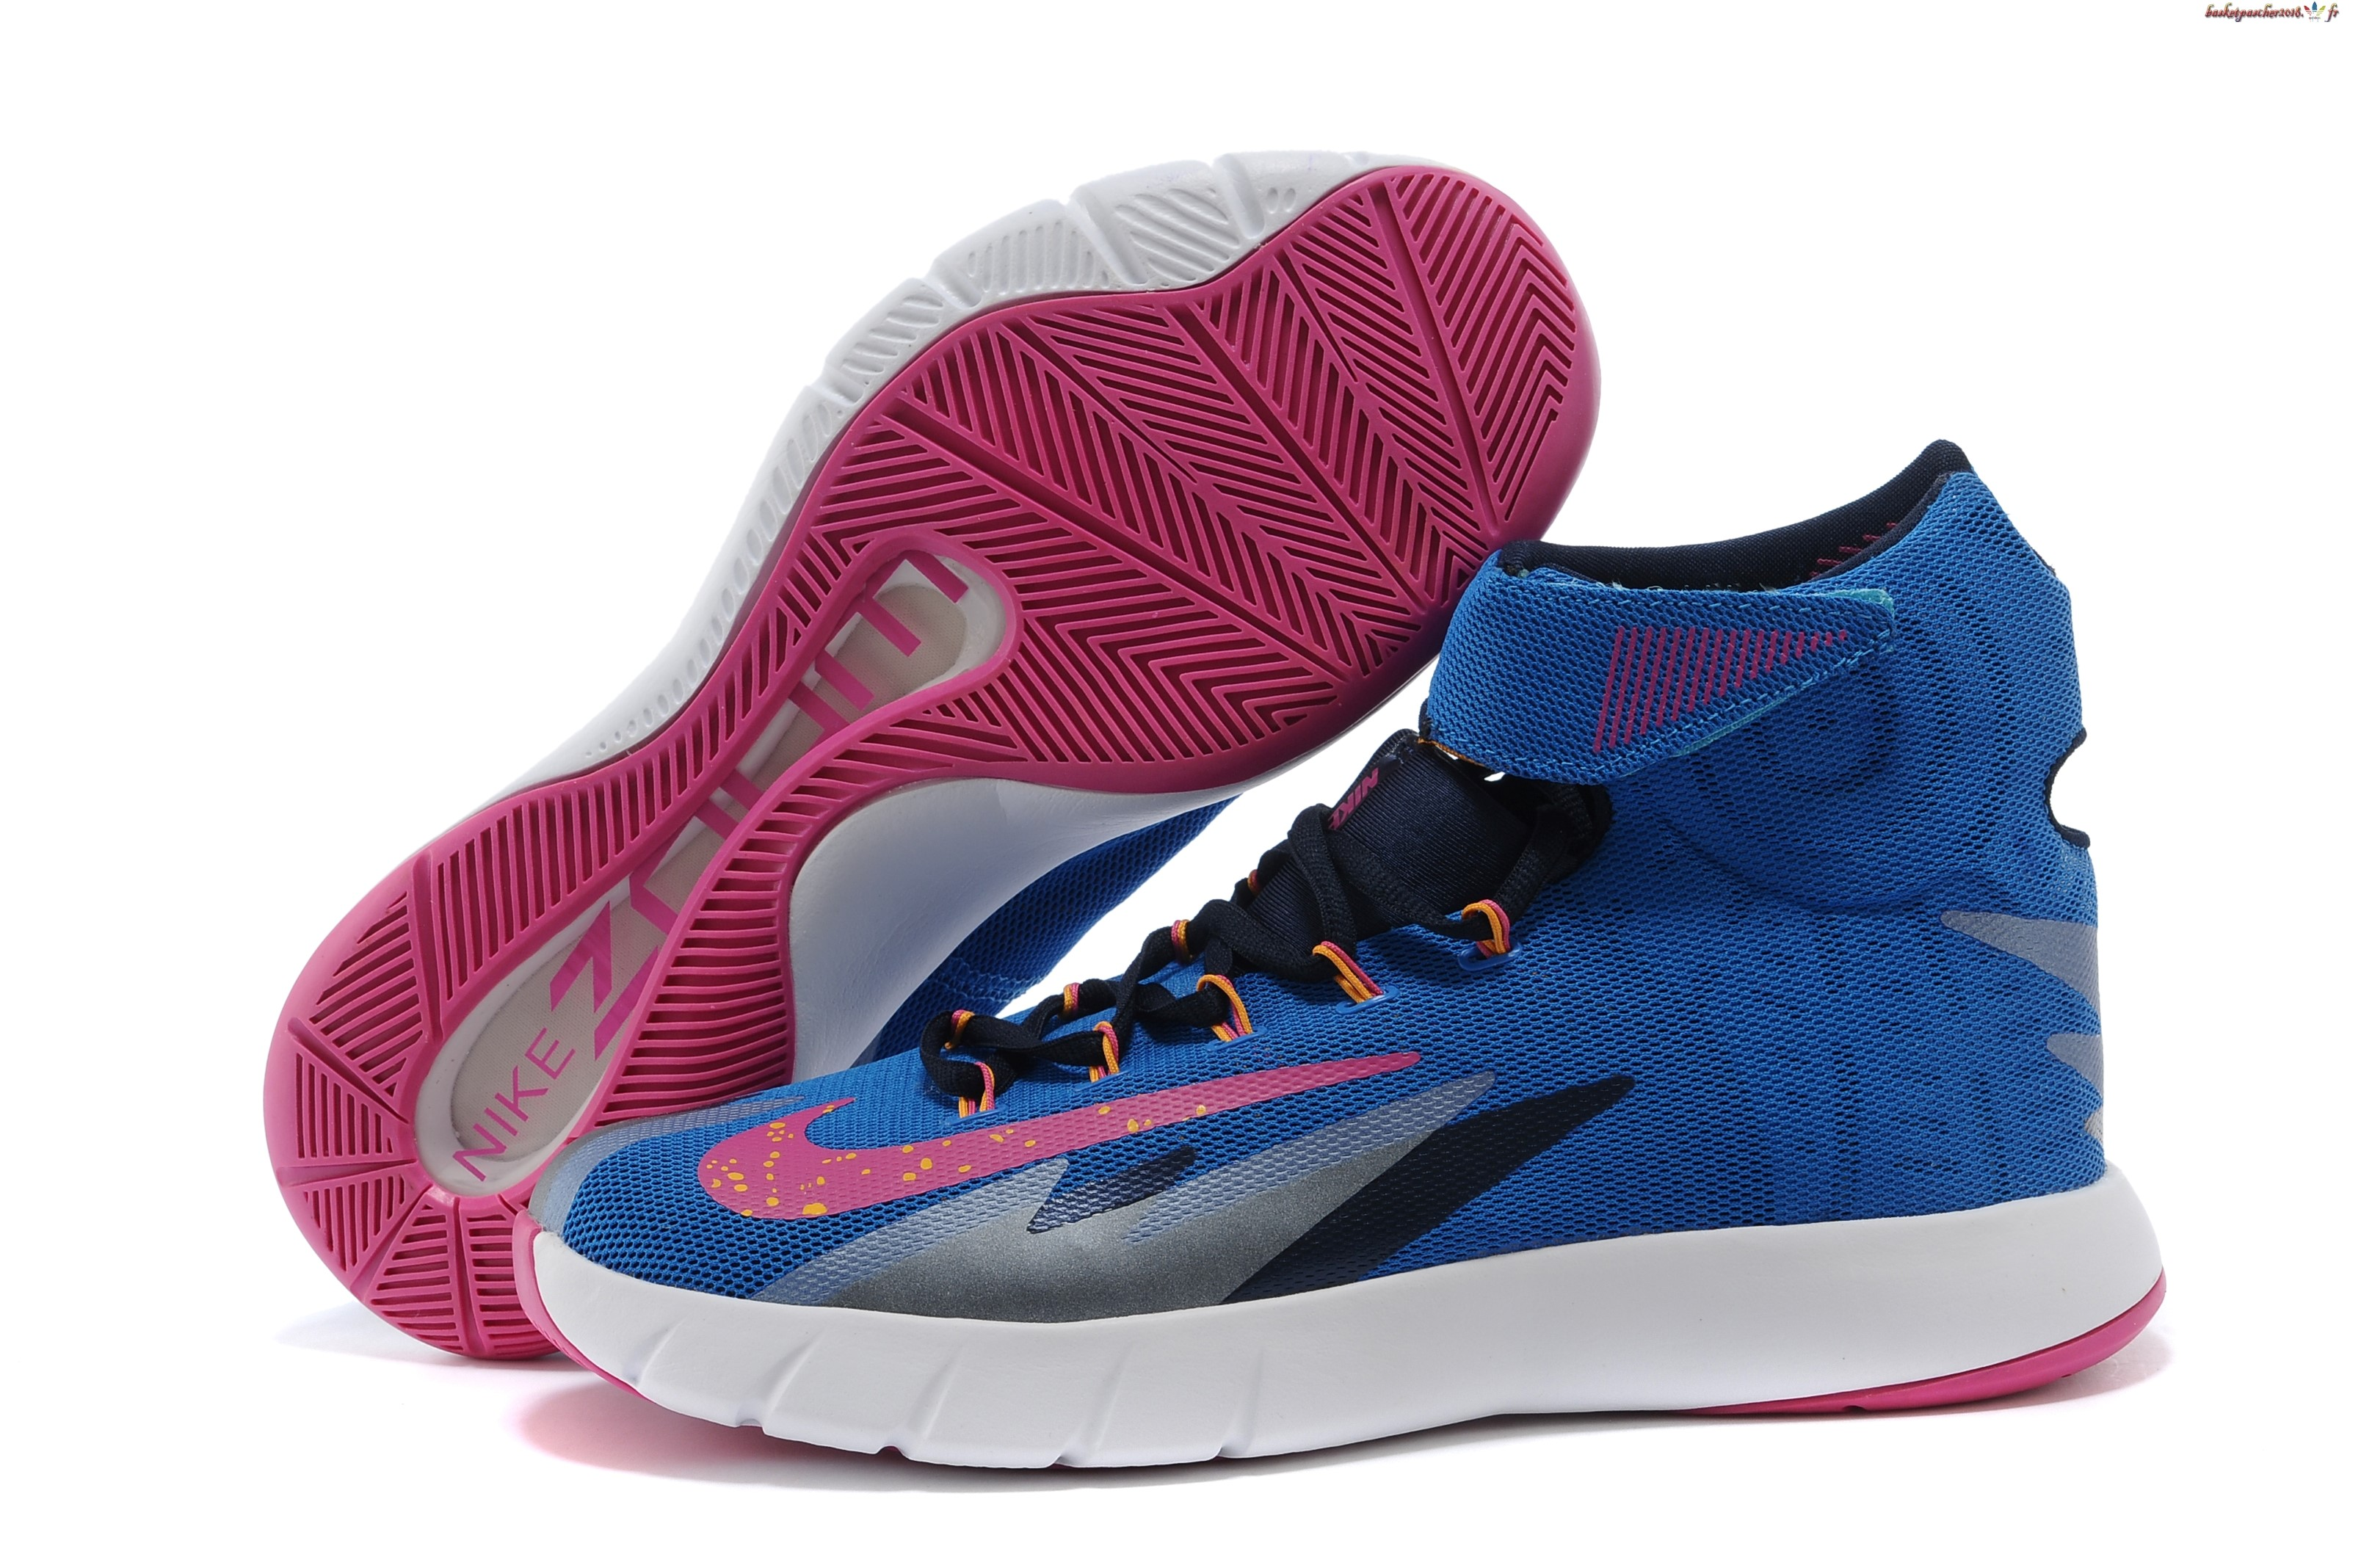 Vente Chaude Chaussures De Basketball Homme Nike Zoom Hyperrev Kyrie Irving Bleu Blanc Rouge Pas Cher